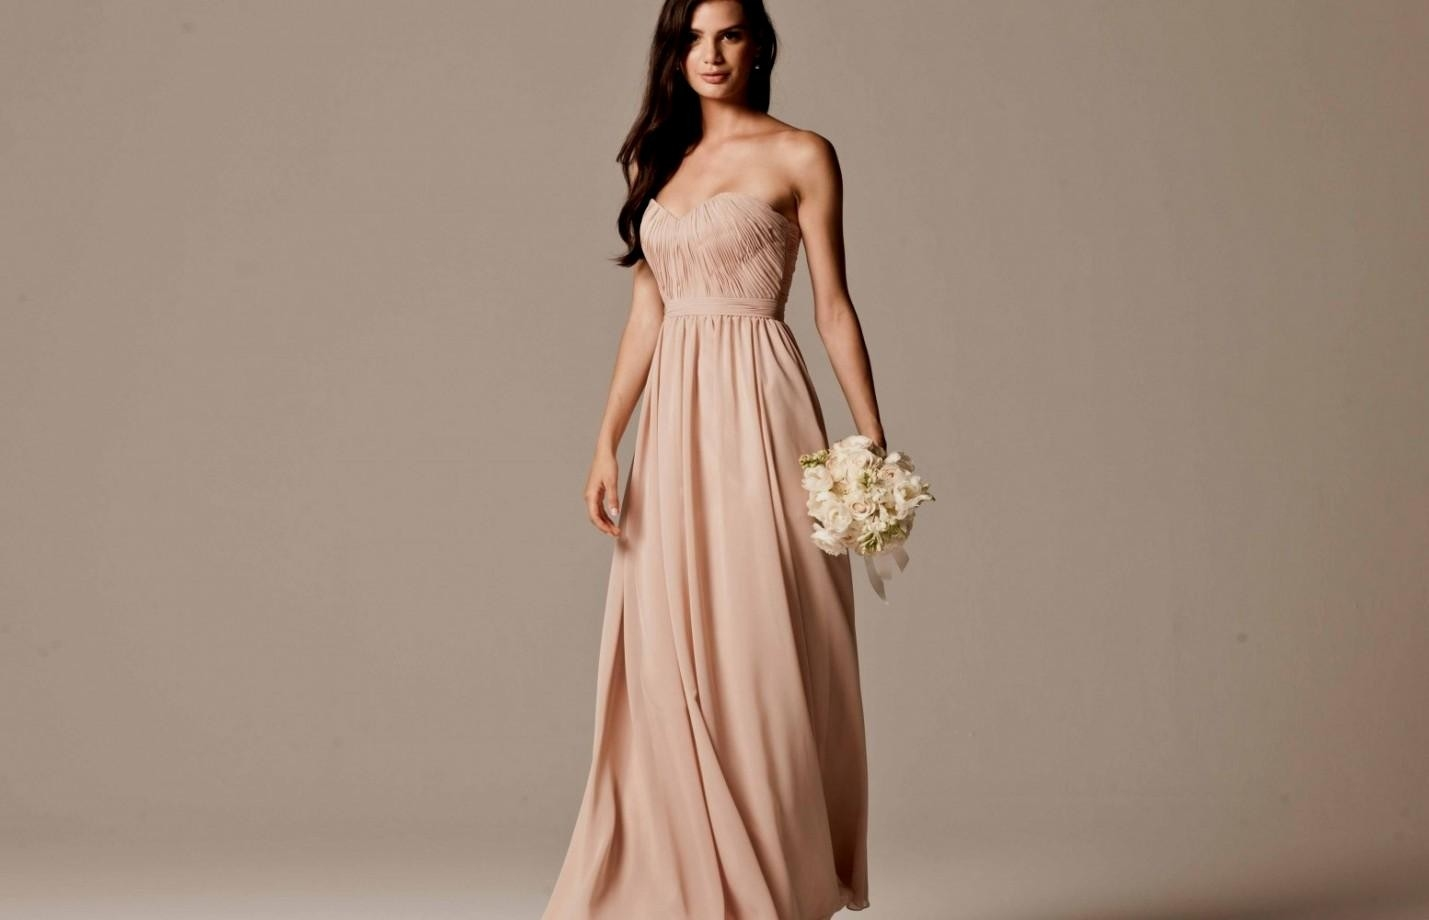 Beige Bridesmaid Dresses Style R101 Short: Shopping Guide. We Are Number One